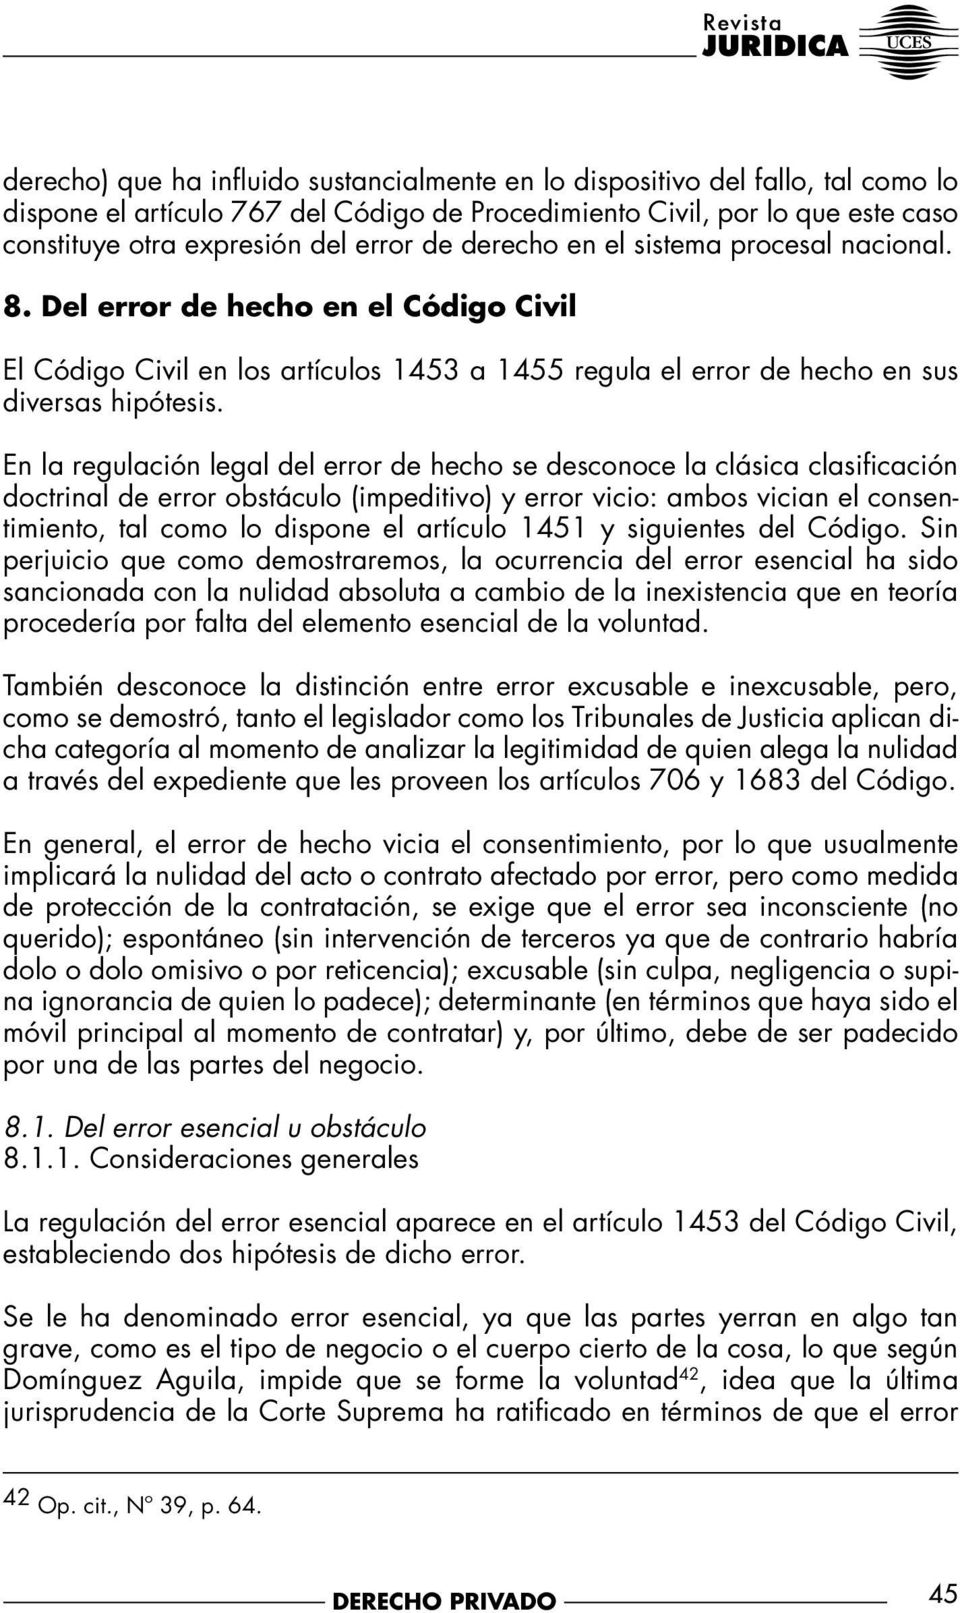 En la regulación legal del error de hecho se desconoce la clásica clasificación doctrinal de error obstáculo (impeditivo) y error vicio: ambos vician el consentimiento, tal como lo dispone el